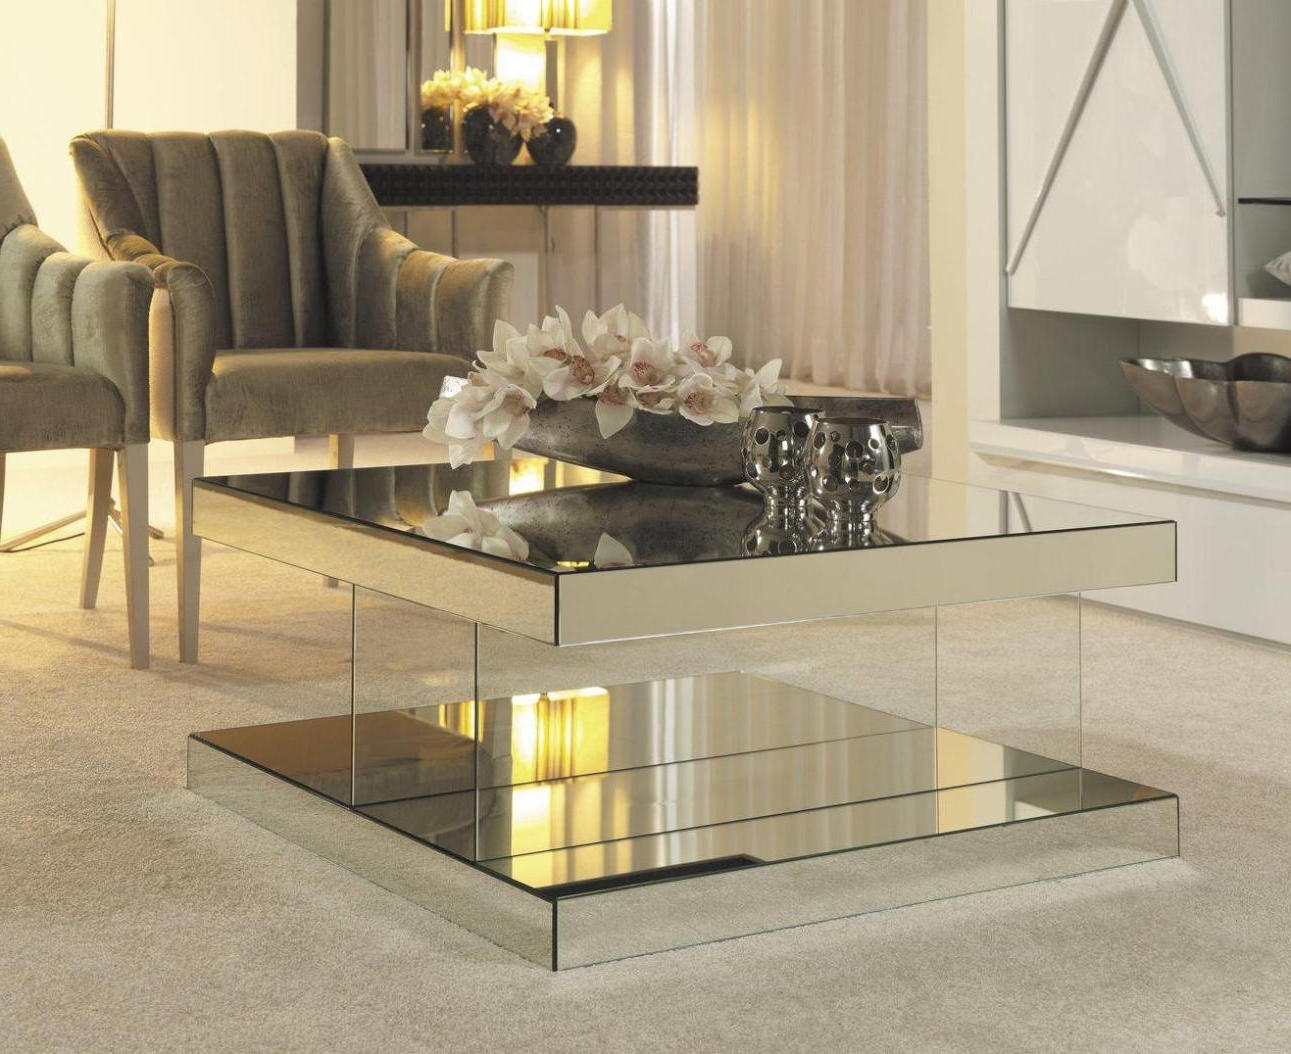 Mirrored coffee table tray roy home design for Trays on coffee tables